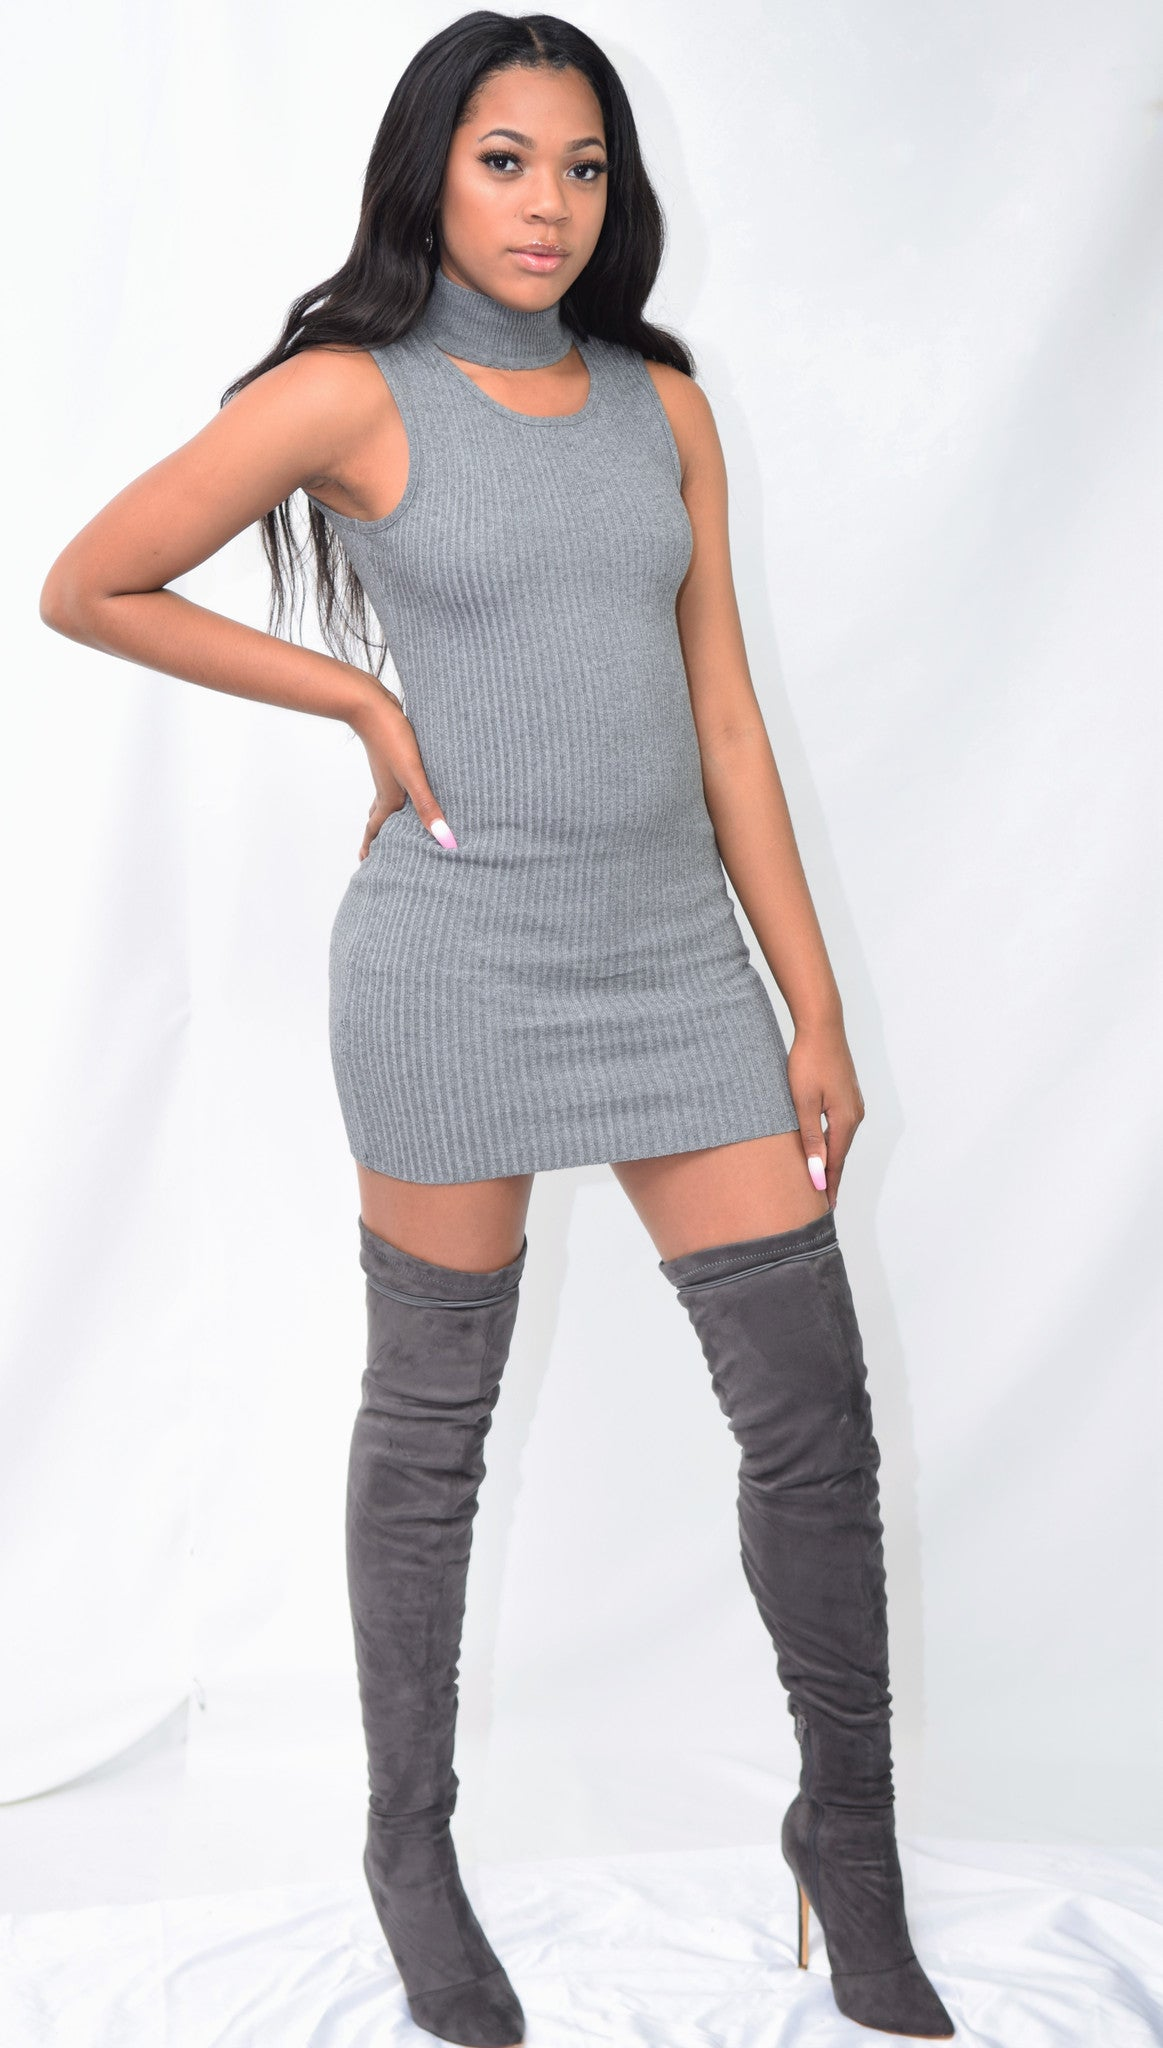 Shades of Grey Sleeveless Ribbed Sweater Dress - Blacque Onyx Apparel